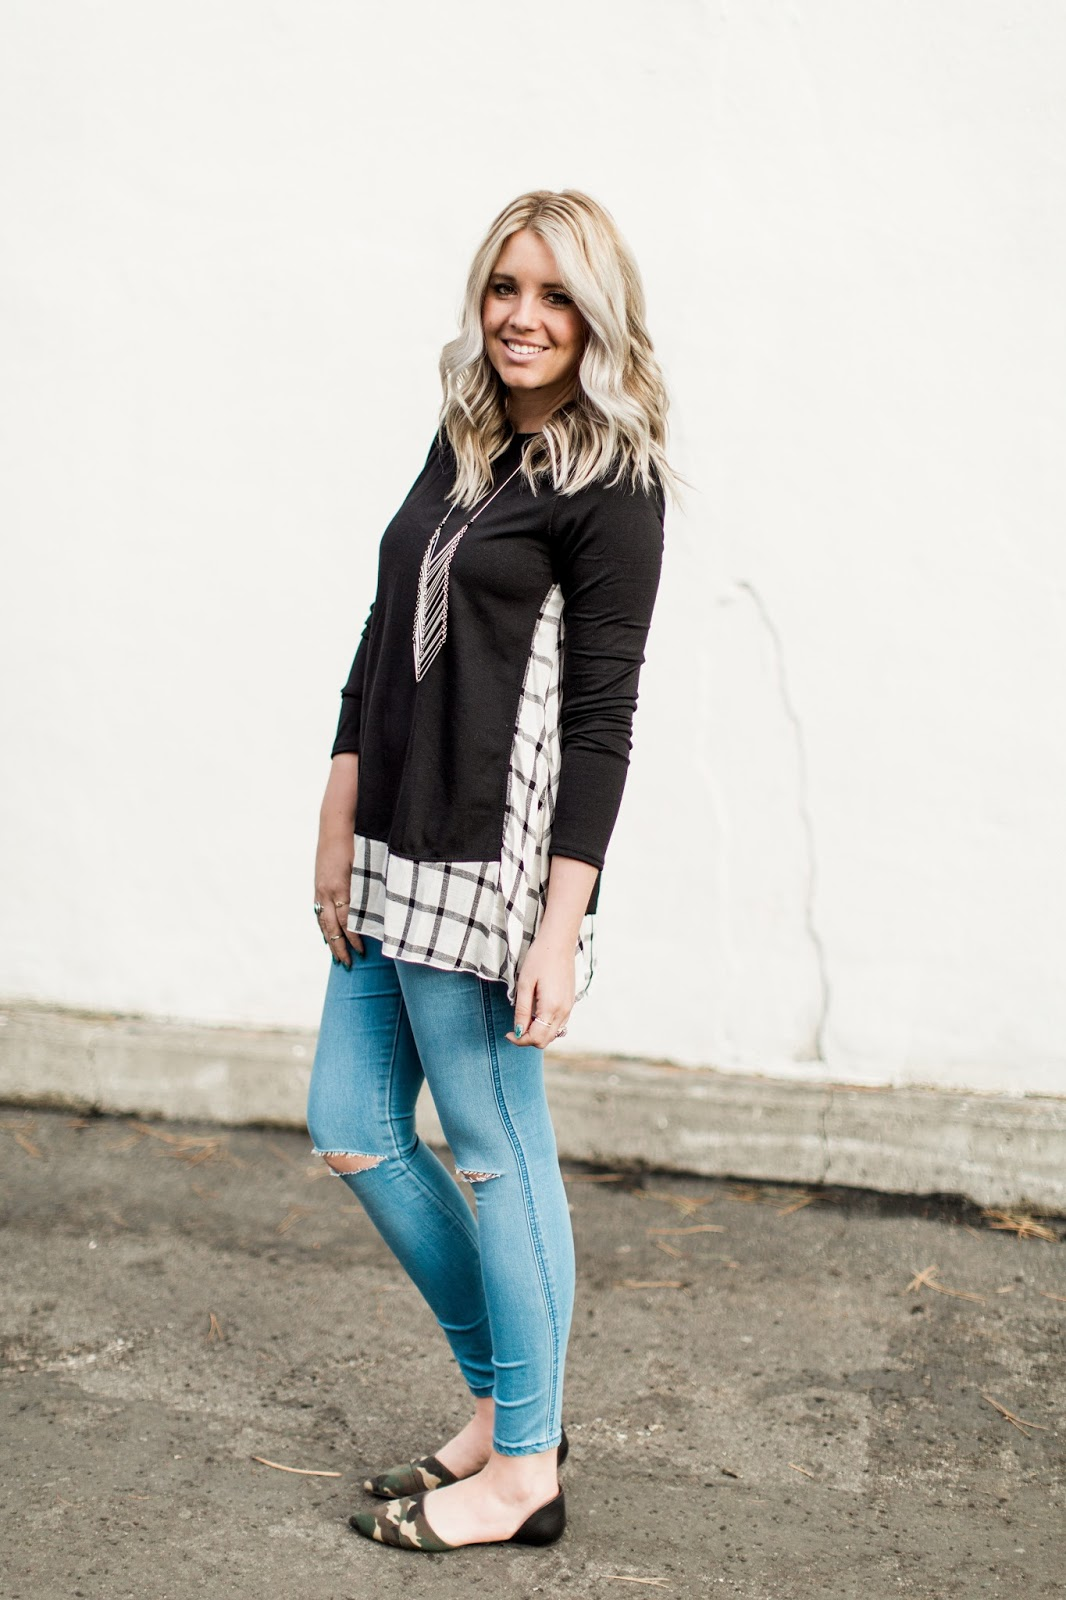 Plaid Details, ASOS Jeans, Utah Fashion Blogger